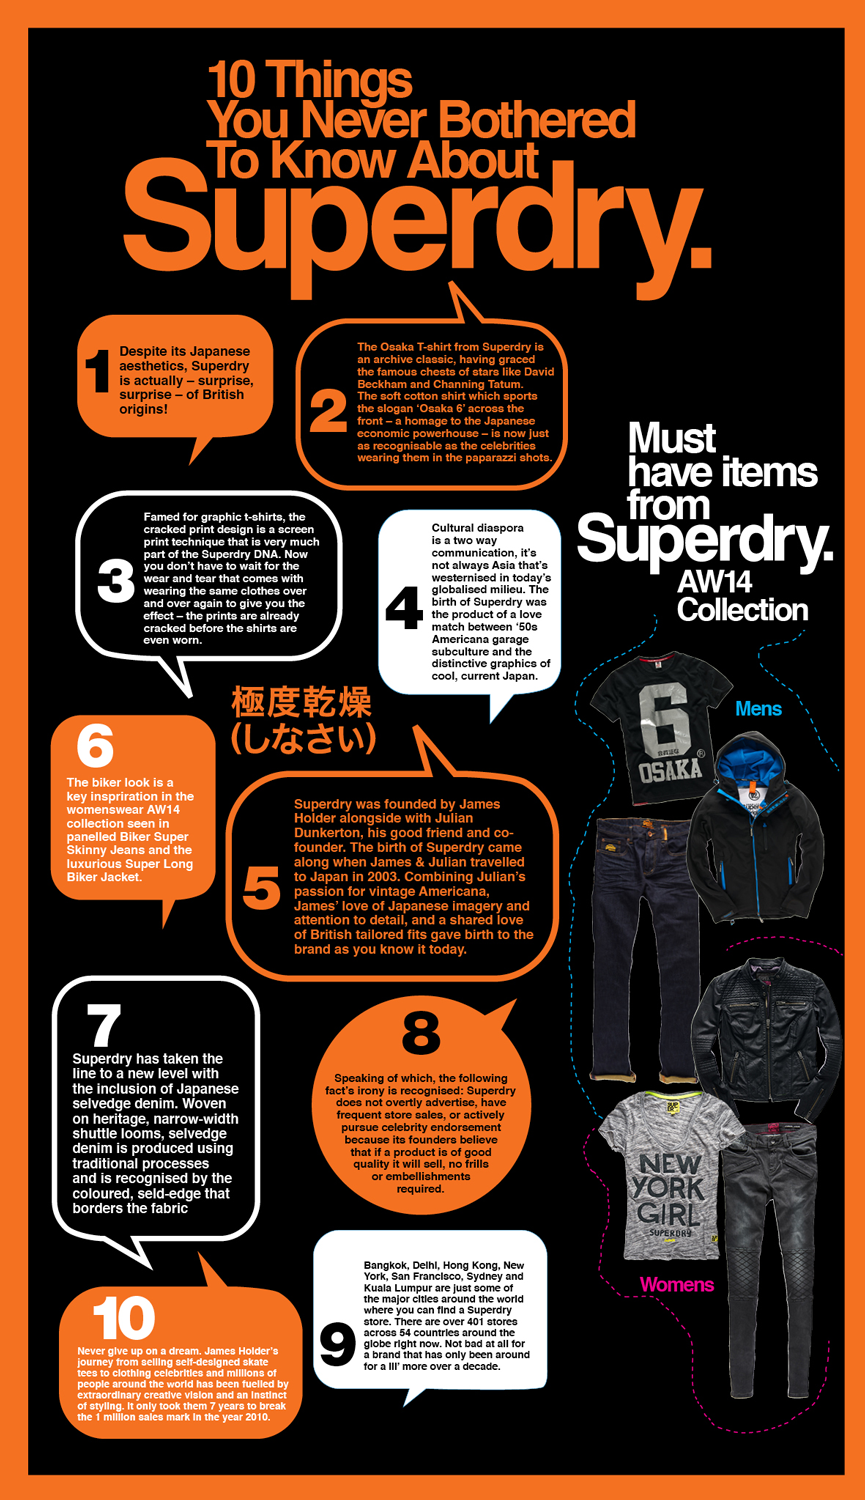 source: Superdry